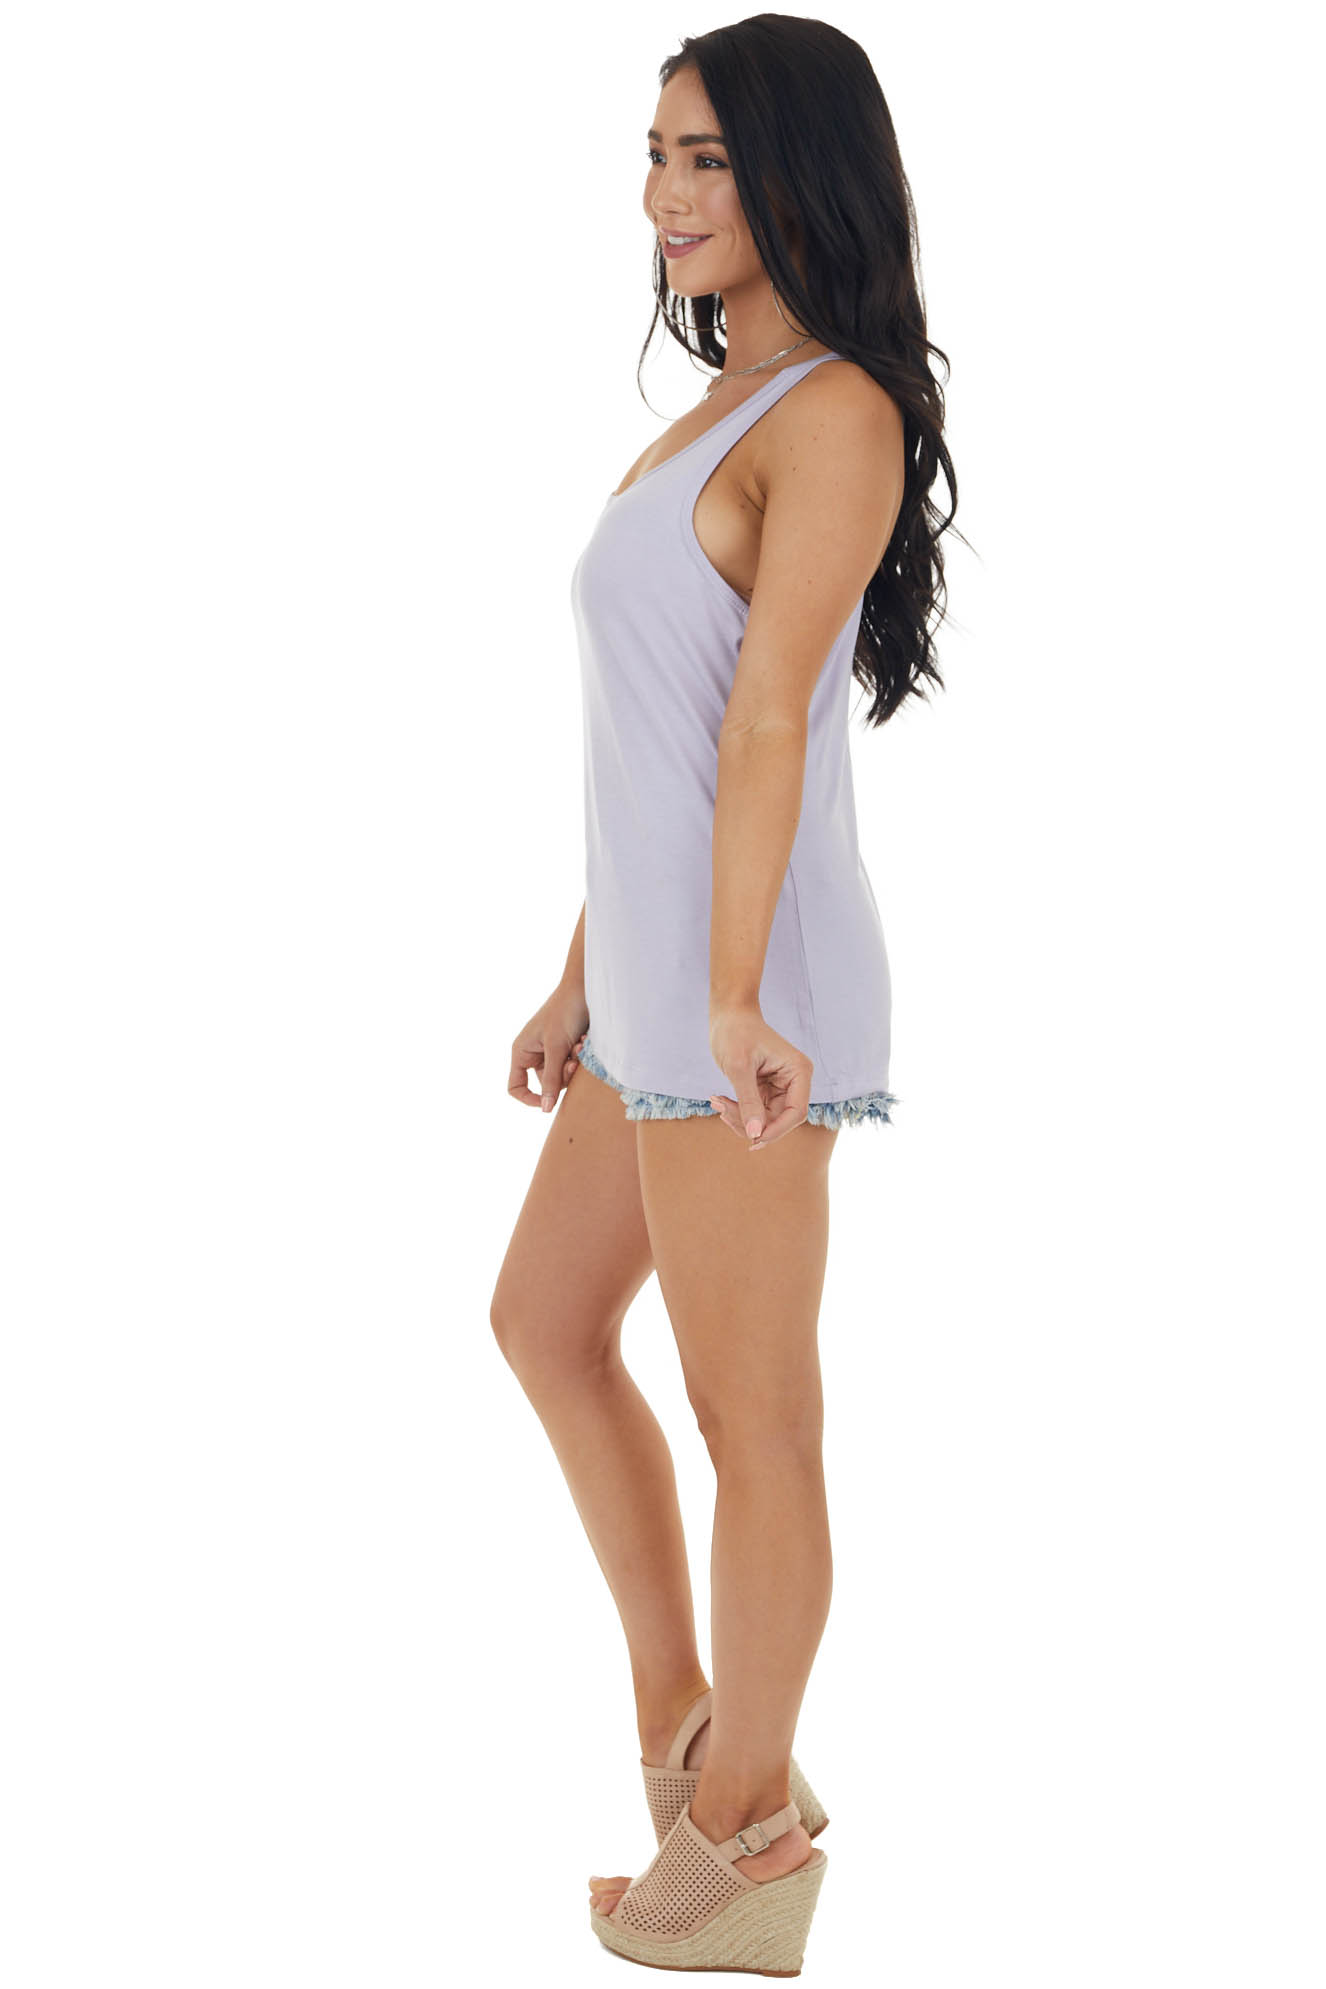 Periwinkle Soft Stretchy Knit Tank Top with Racerback